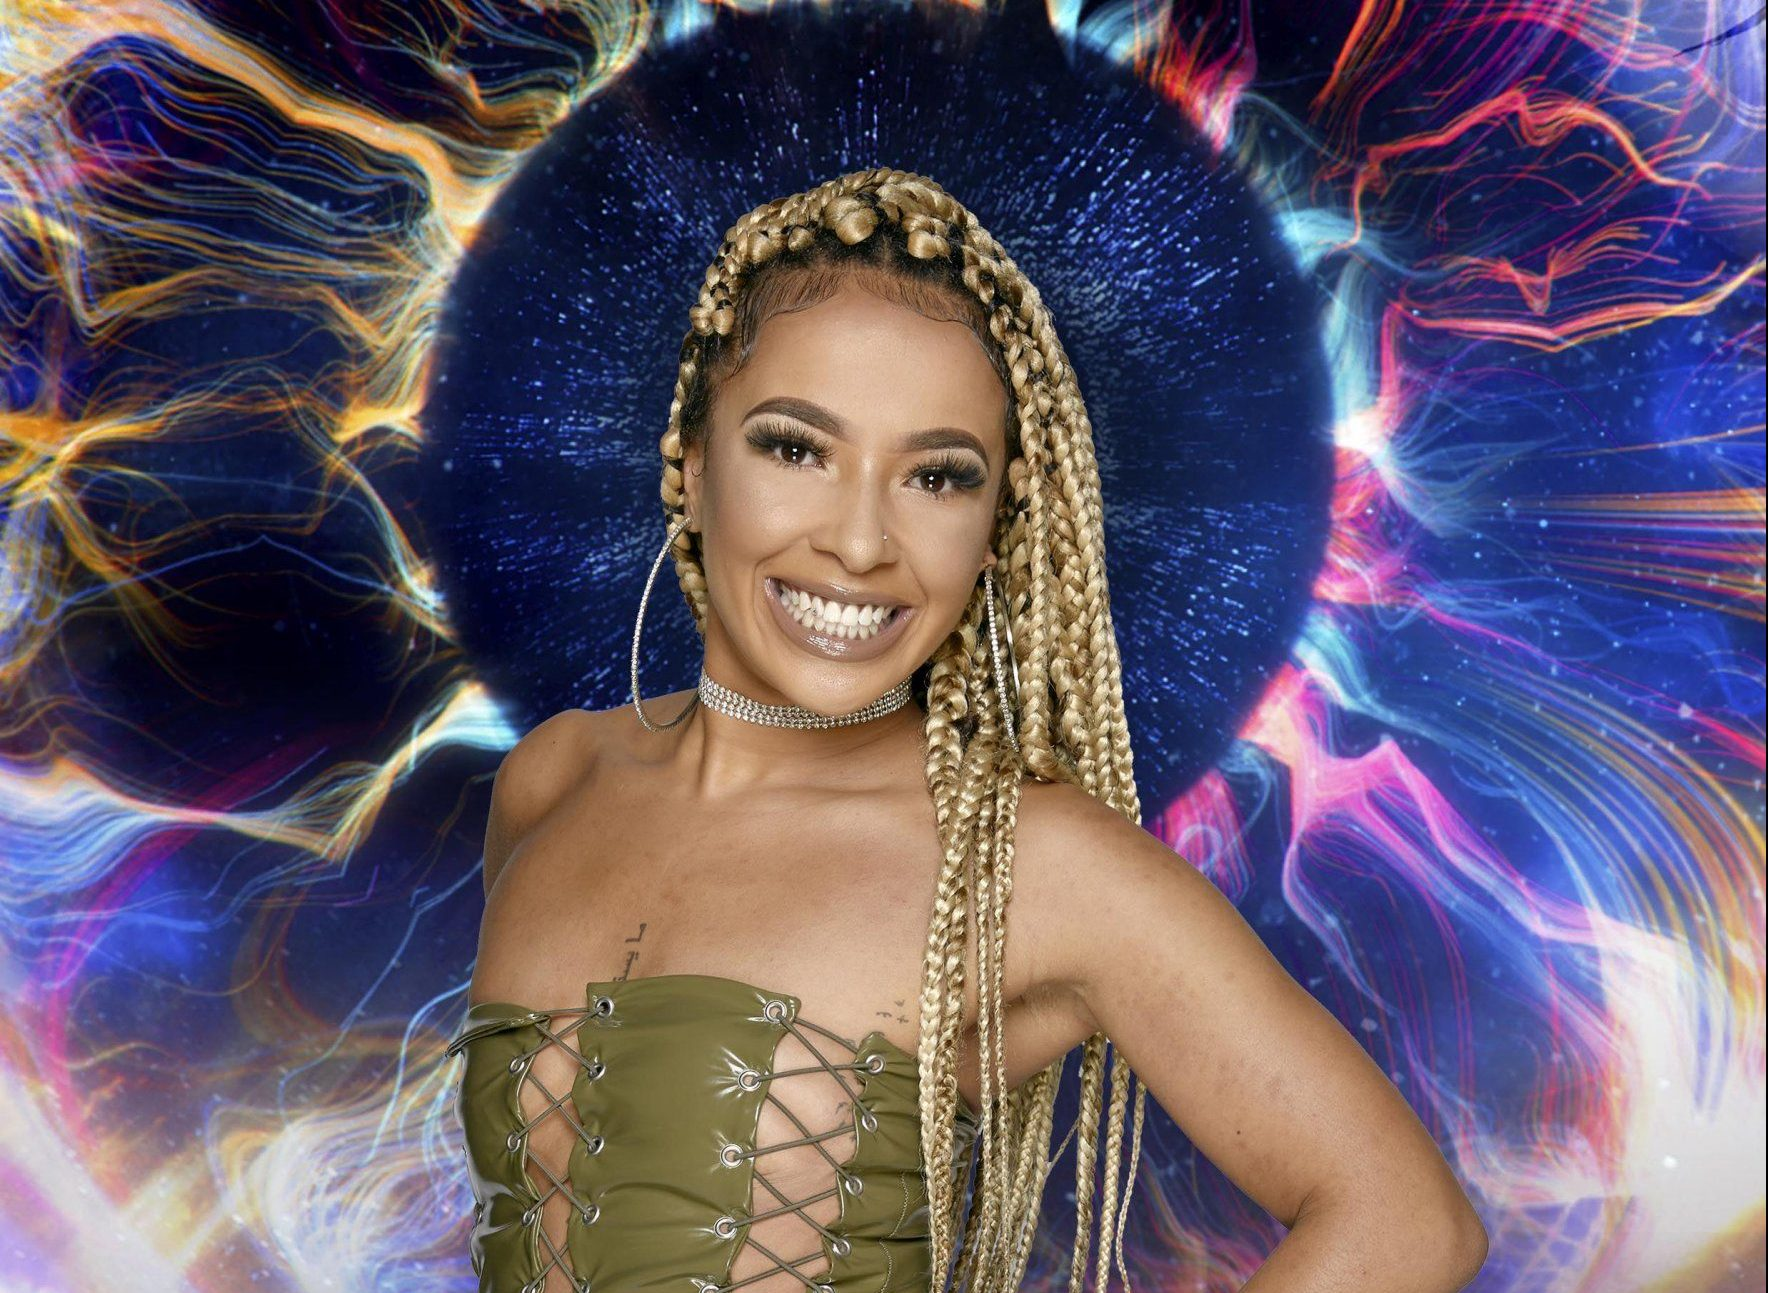 Undated handout photo issued by Channel 5 of Big Brother housemate Kenaley Amos-Sissons, as Channel 5 has announced that the upcoming series, due to launch Friday September 14, will be the last. PRESS ASSOCIATION Photo. Issue date: Friday September 14, 2018. Just days after the finale of Celebrity Big Brother the house has been transformed once again to host its final contestants. See PA story SHOWBIZ BB. Photo credit should read: Channel 5/PA Wire NOTE TO EDITORS: This handout photo may only be used in for editorial reporting purposes for the contemporaneous illustration of events, things or the people in the image or facts mentioned in the caption. Reuse of the picture may require further permission from the copyright holder.